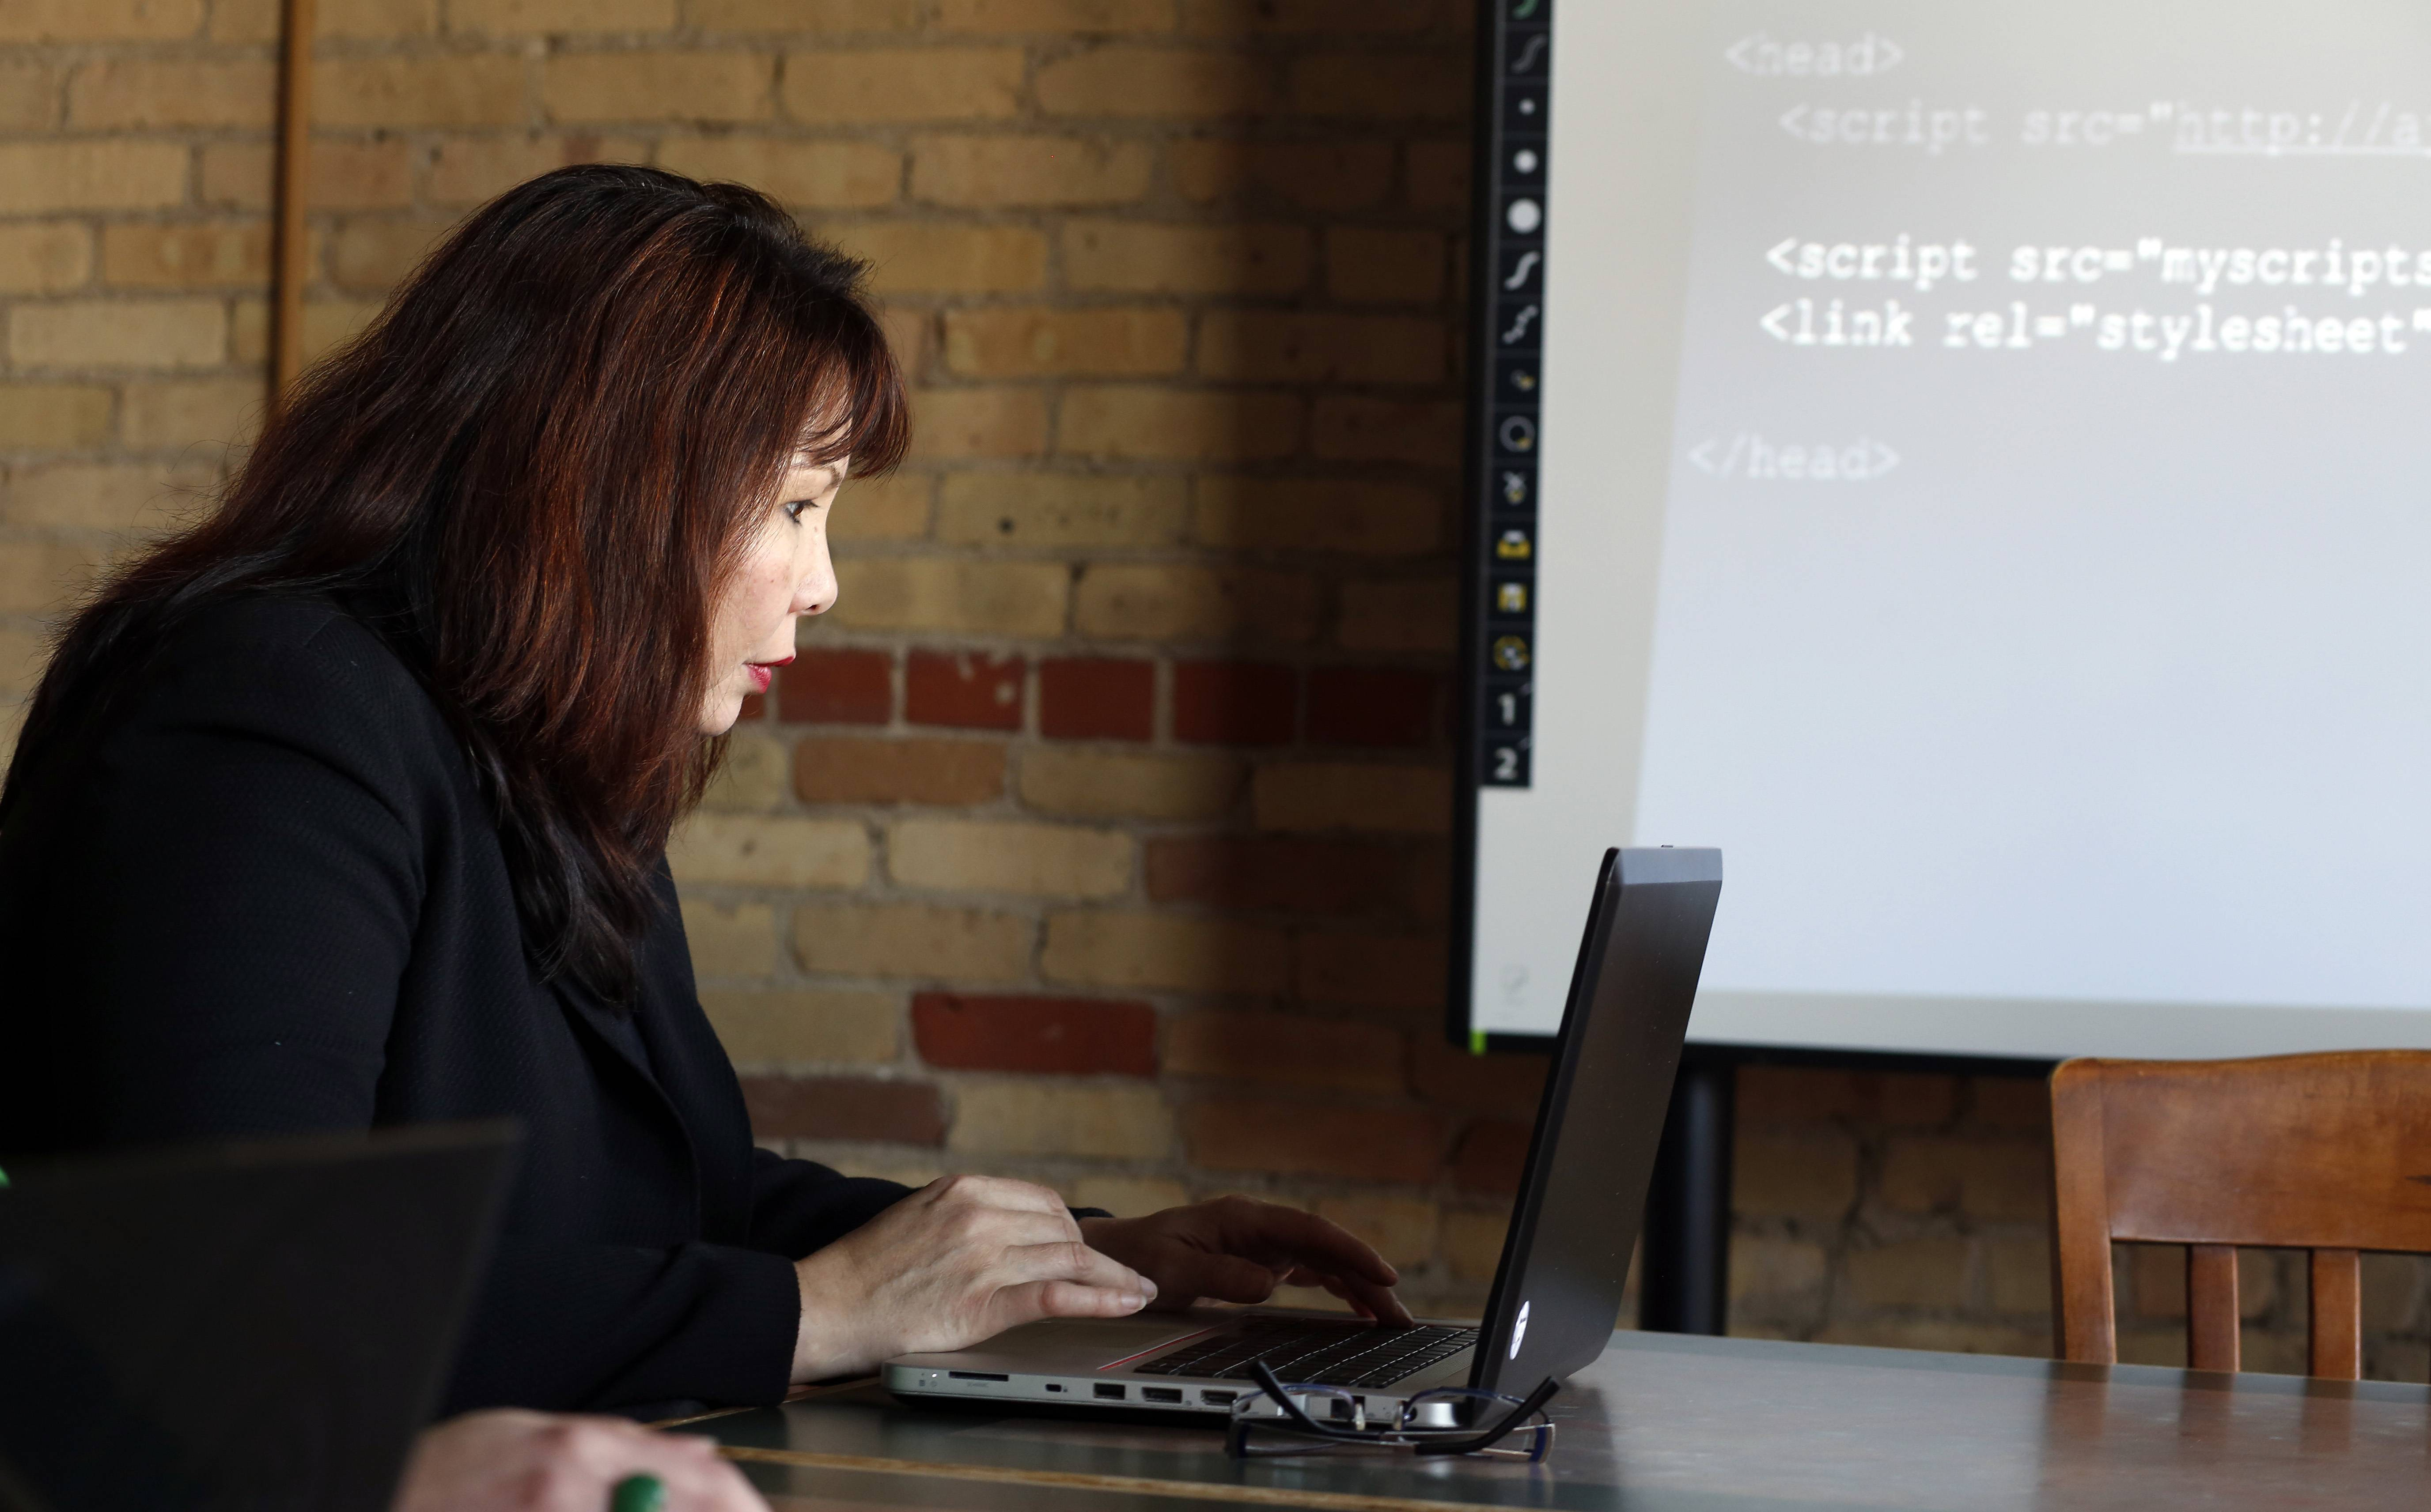 U.S. Rep. Tammy Duckworth learns how to code an app during a visit to the Elgin Technology Center Wednesday to promote the House Student App Challenge.